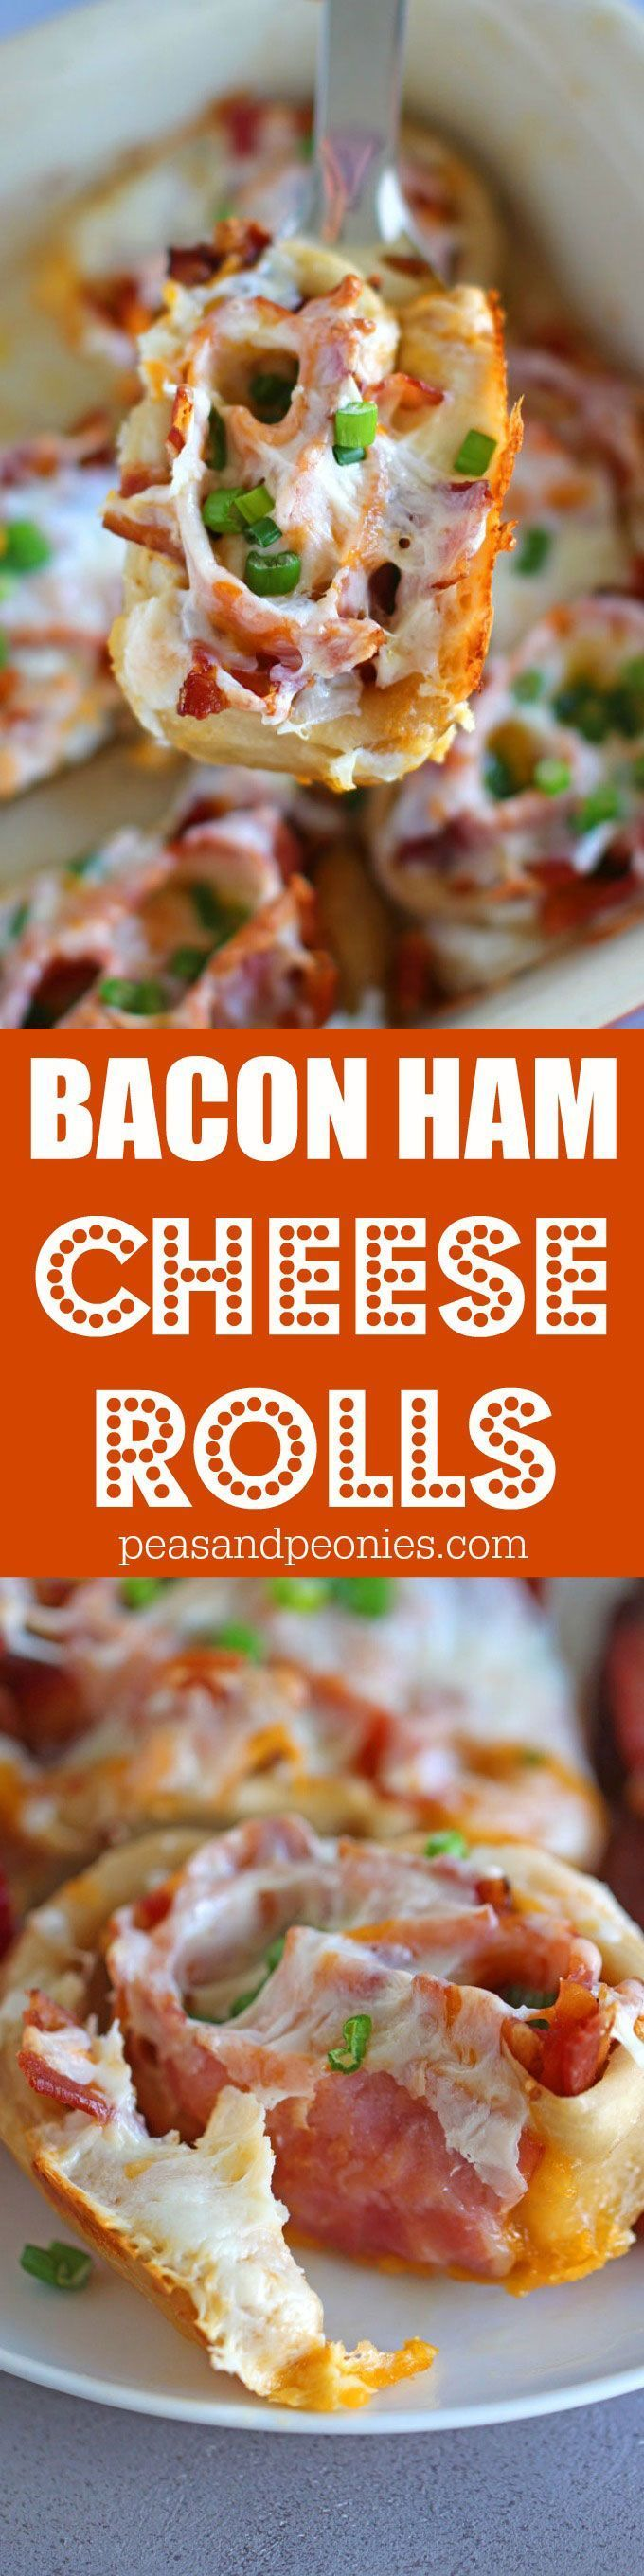 Bacon Ham Cheese Rolls are so easy to make using pizza dough or crescent dough, stuffed with bacon, ham and cheddar cheese these are perfect for brunch. SmithfieldBrunch #ad